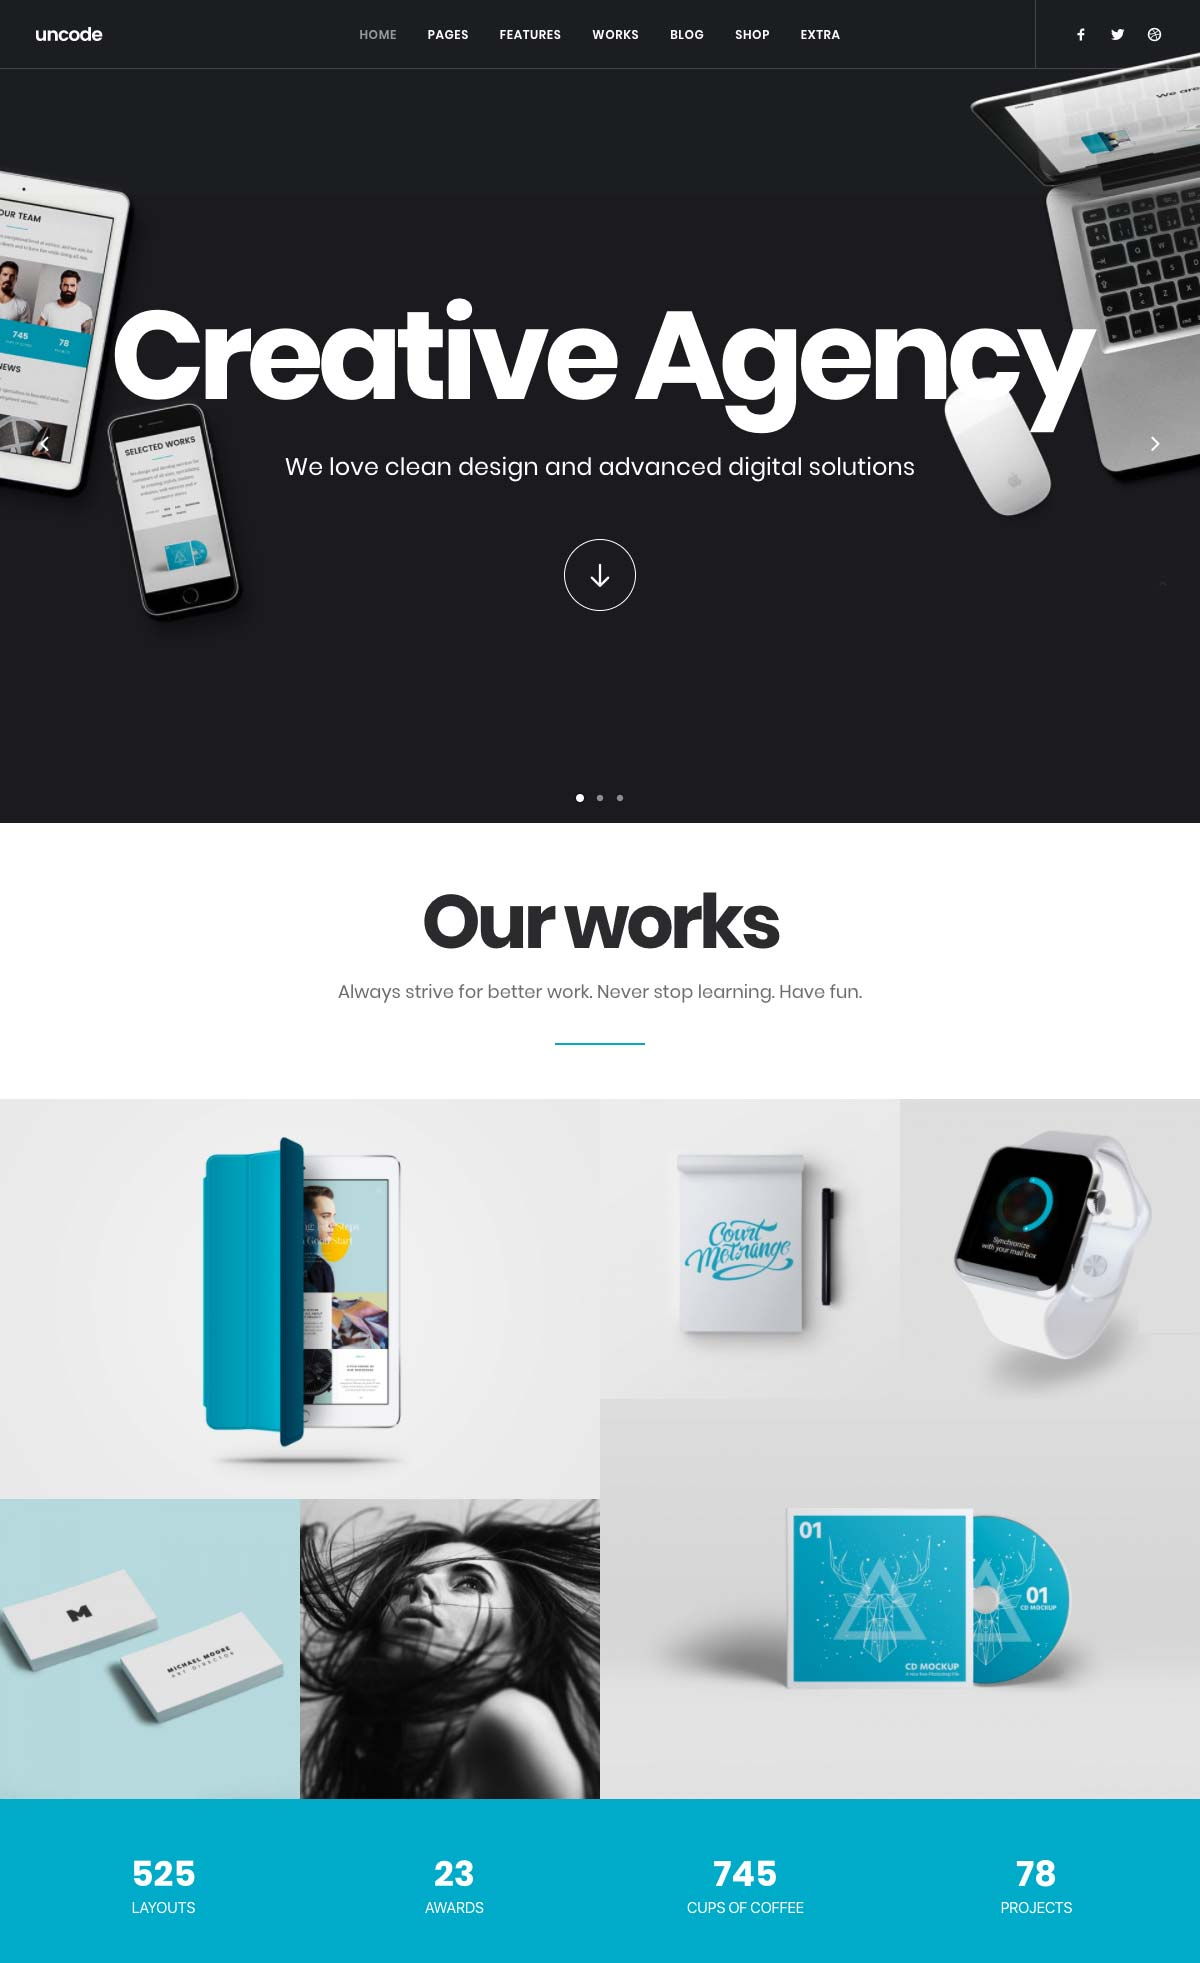 Wordpress Template Landing Page Creative Agency